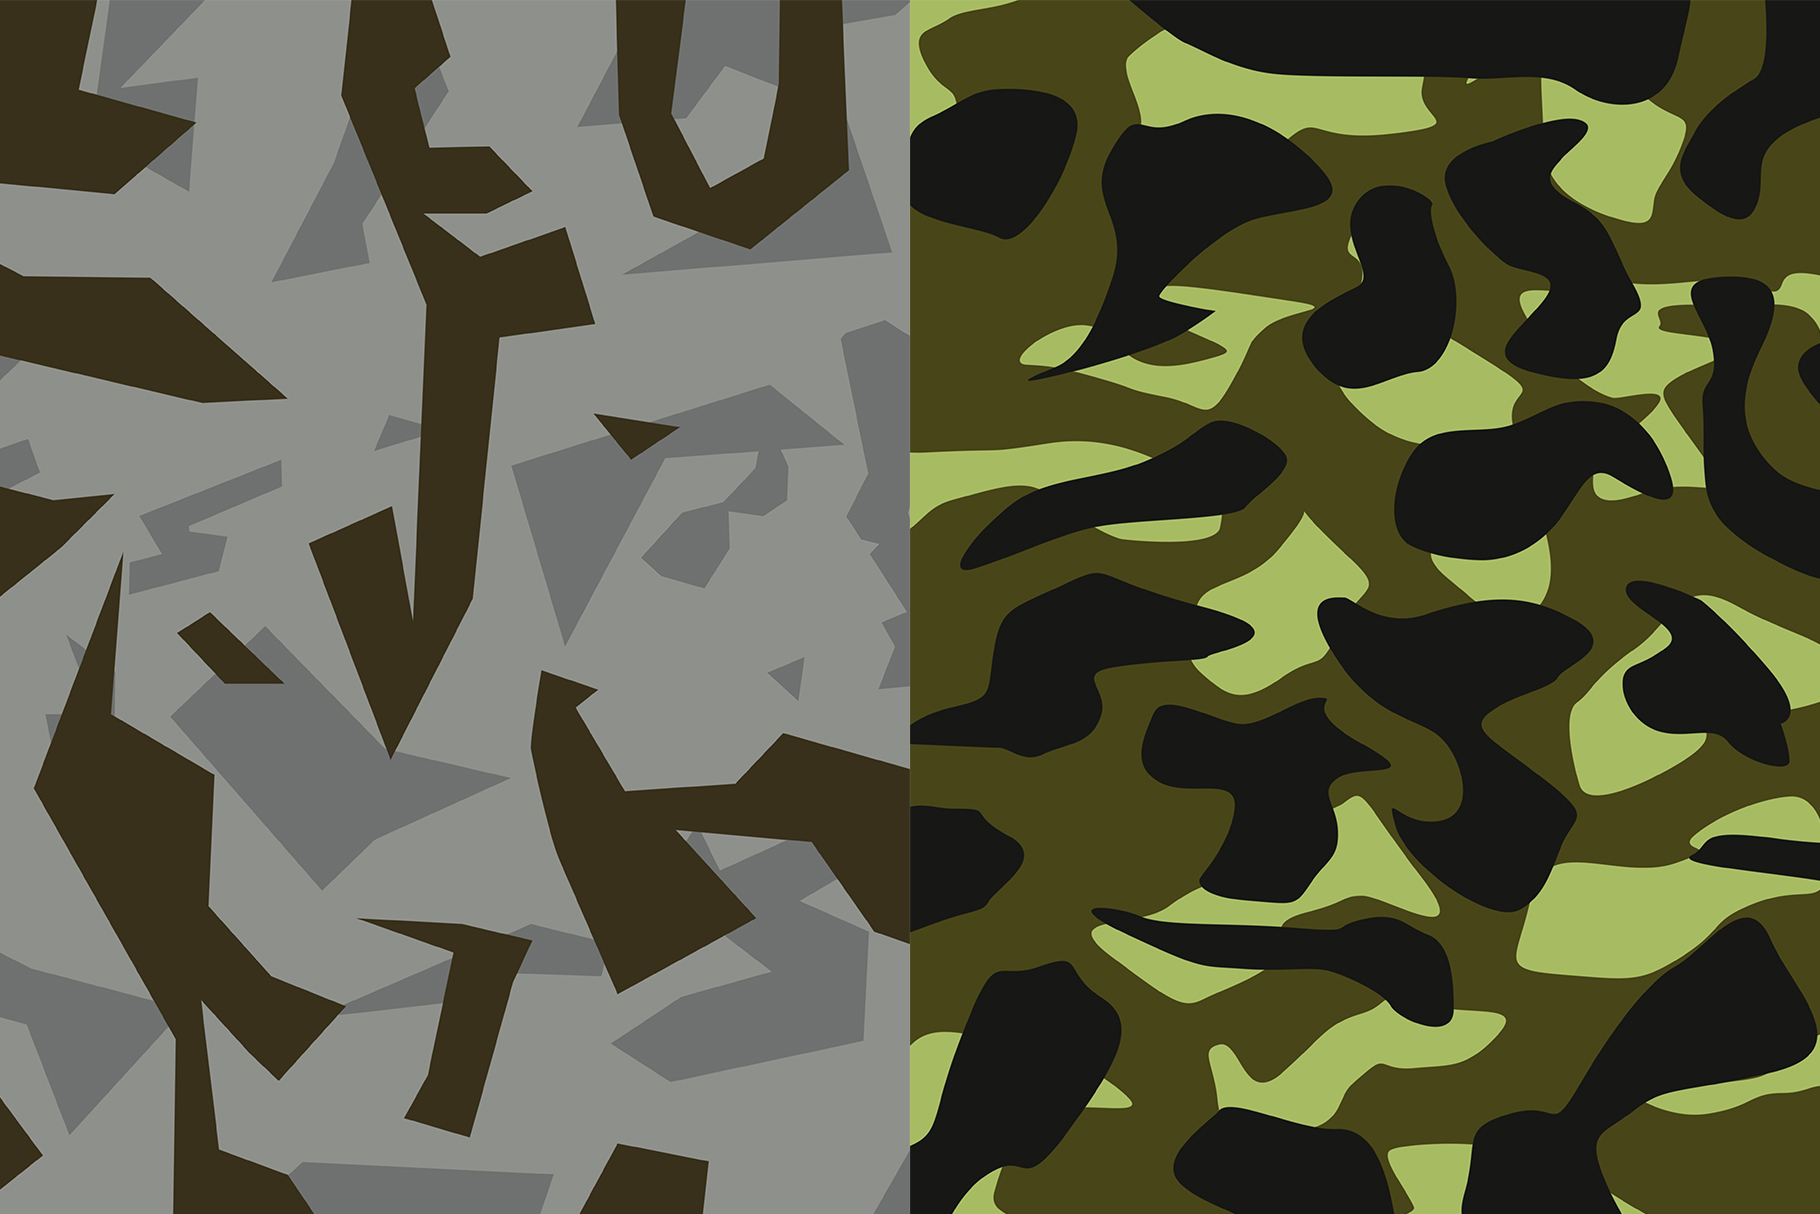 10 Army Camo Patterns Vol.2 example image 6